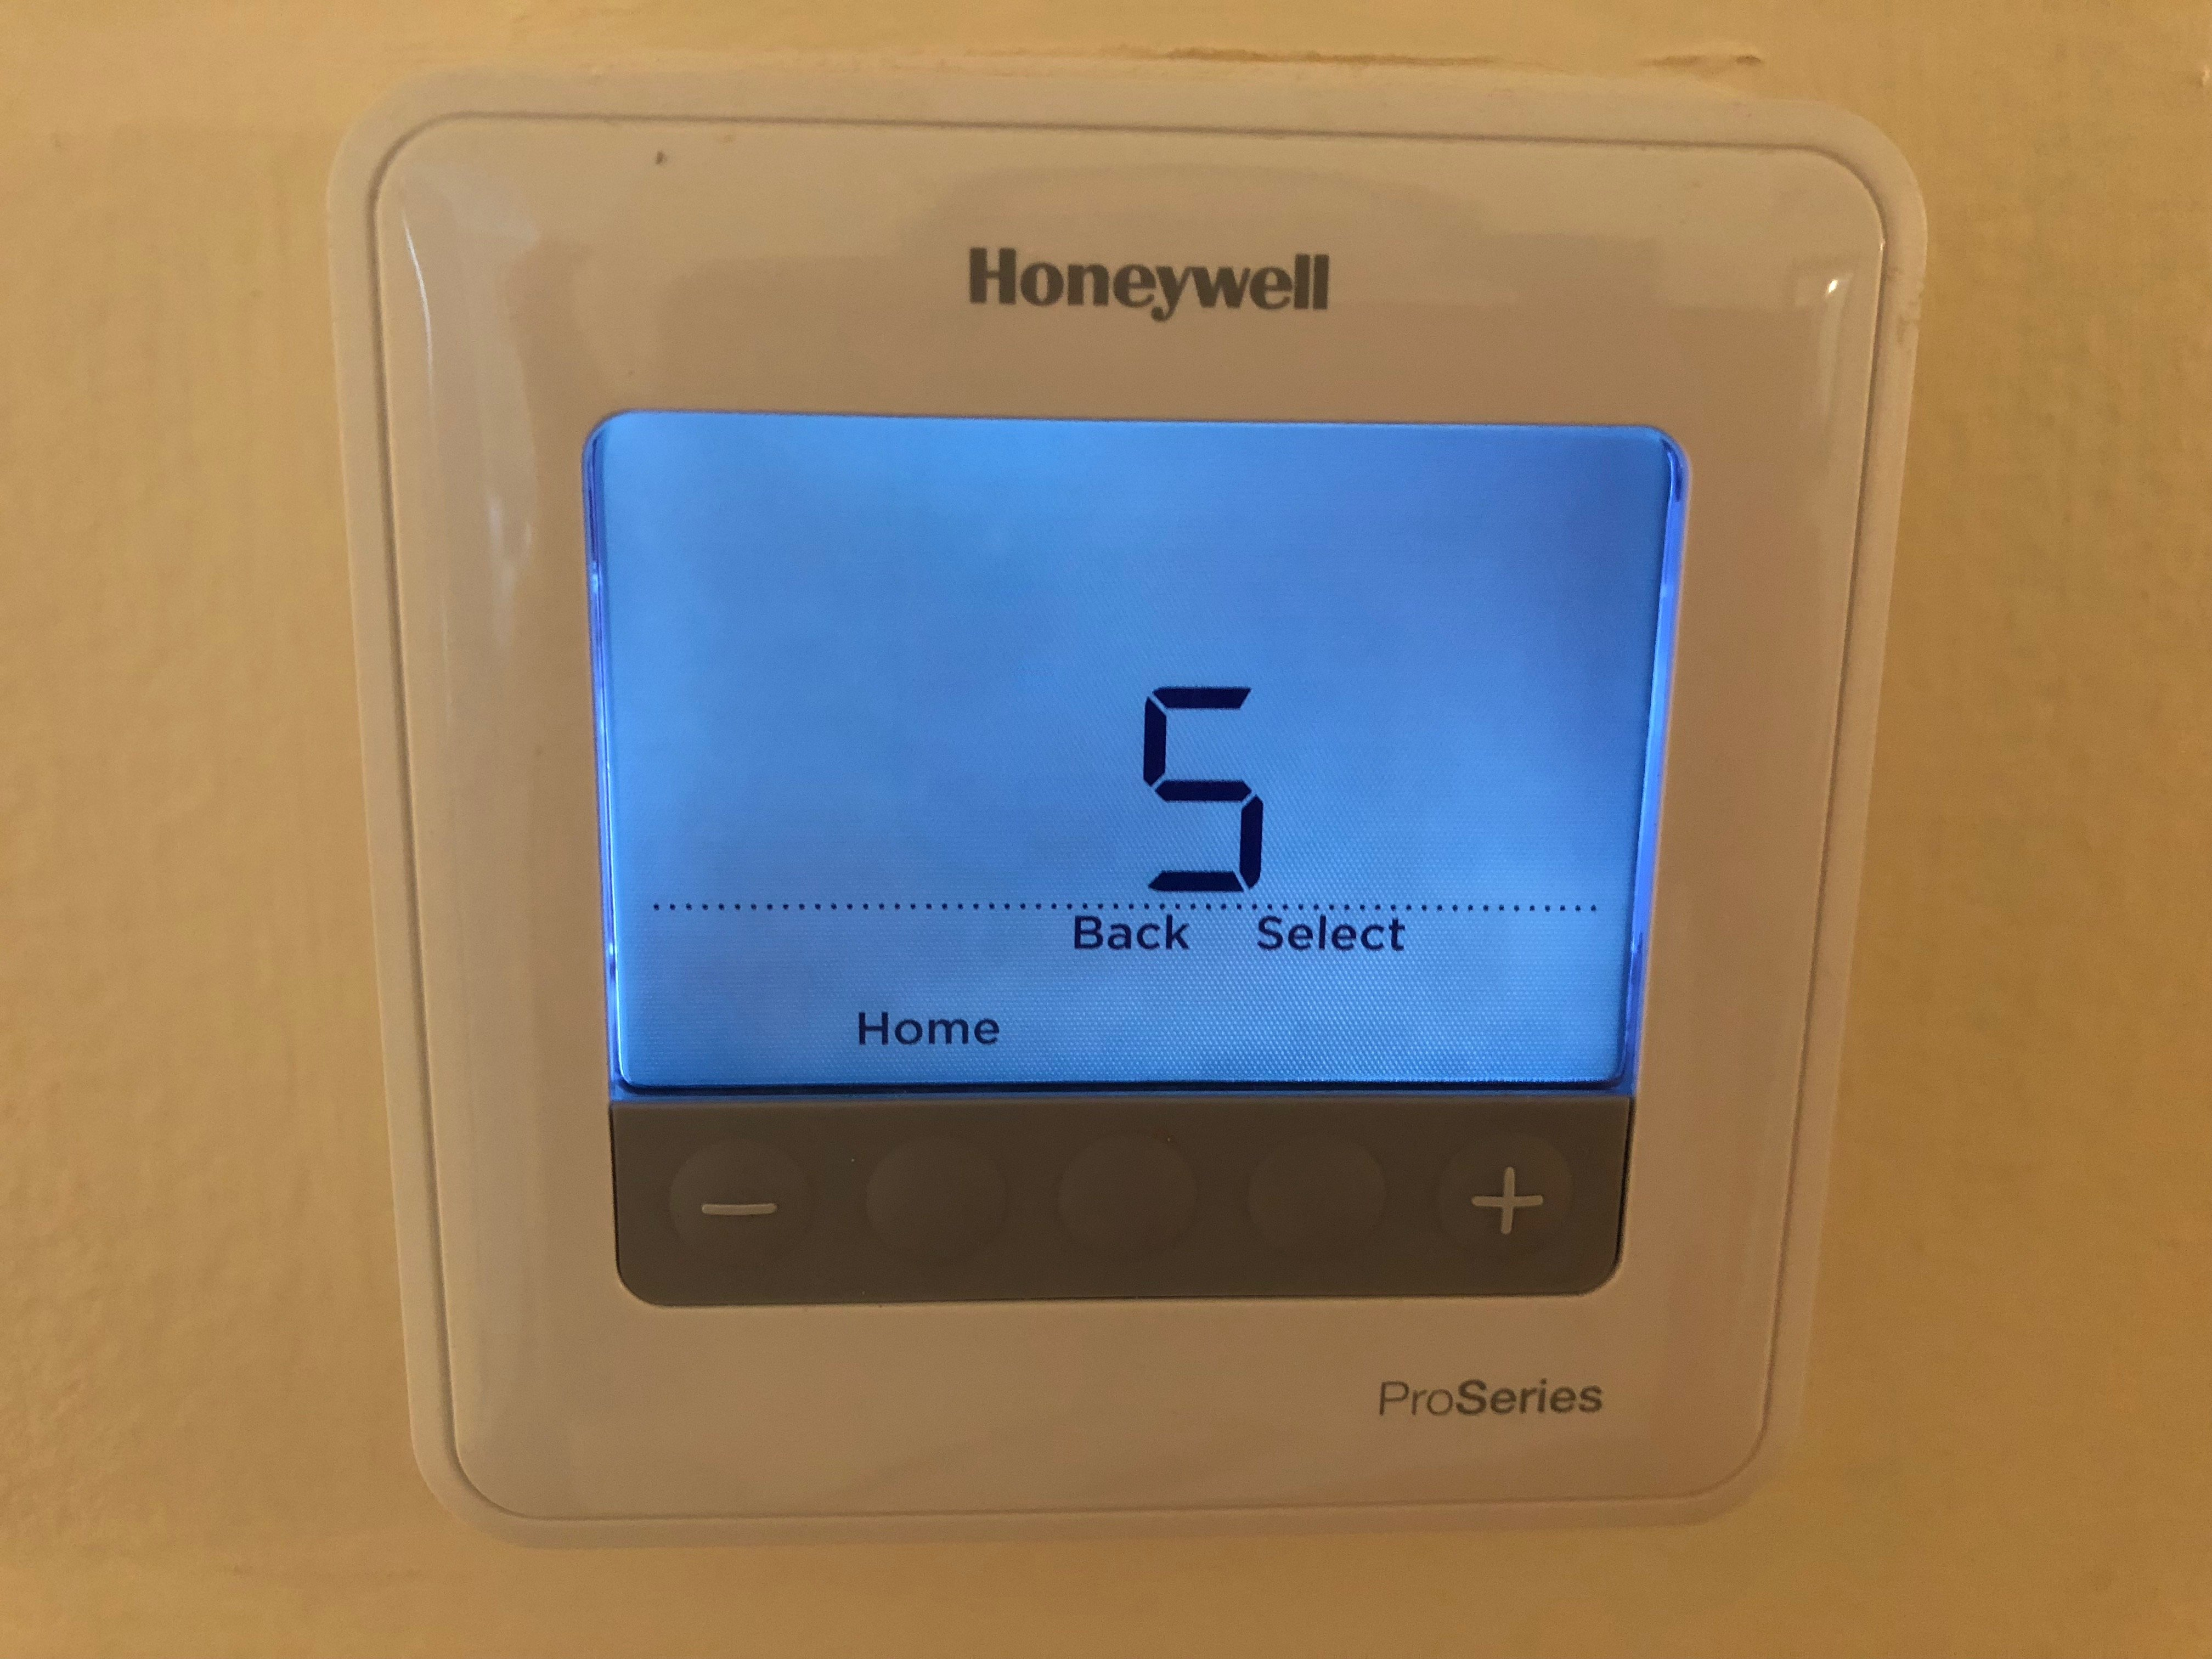 My Honeywell Proseries thermostat is locked  How do I unlock